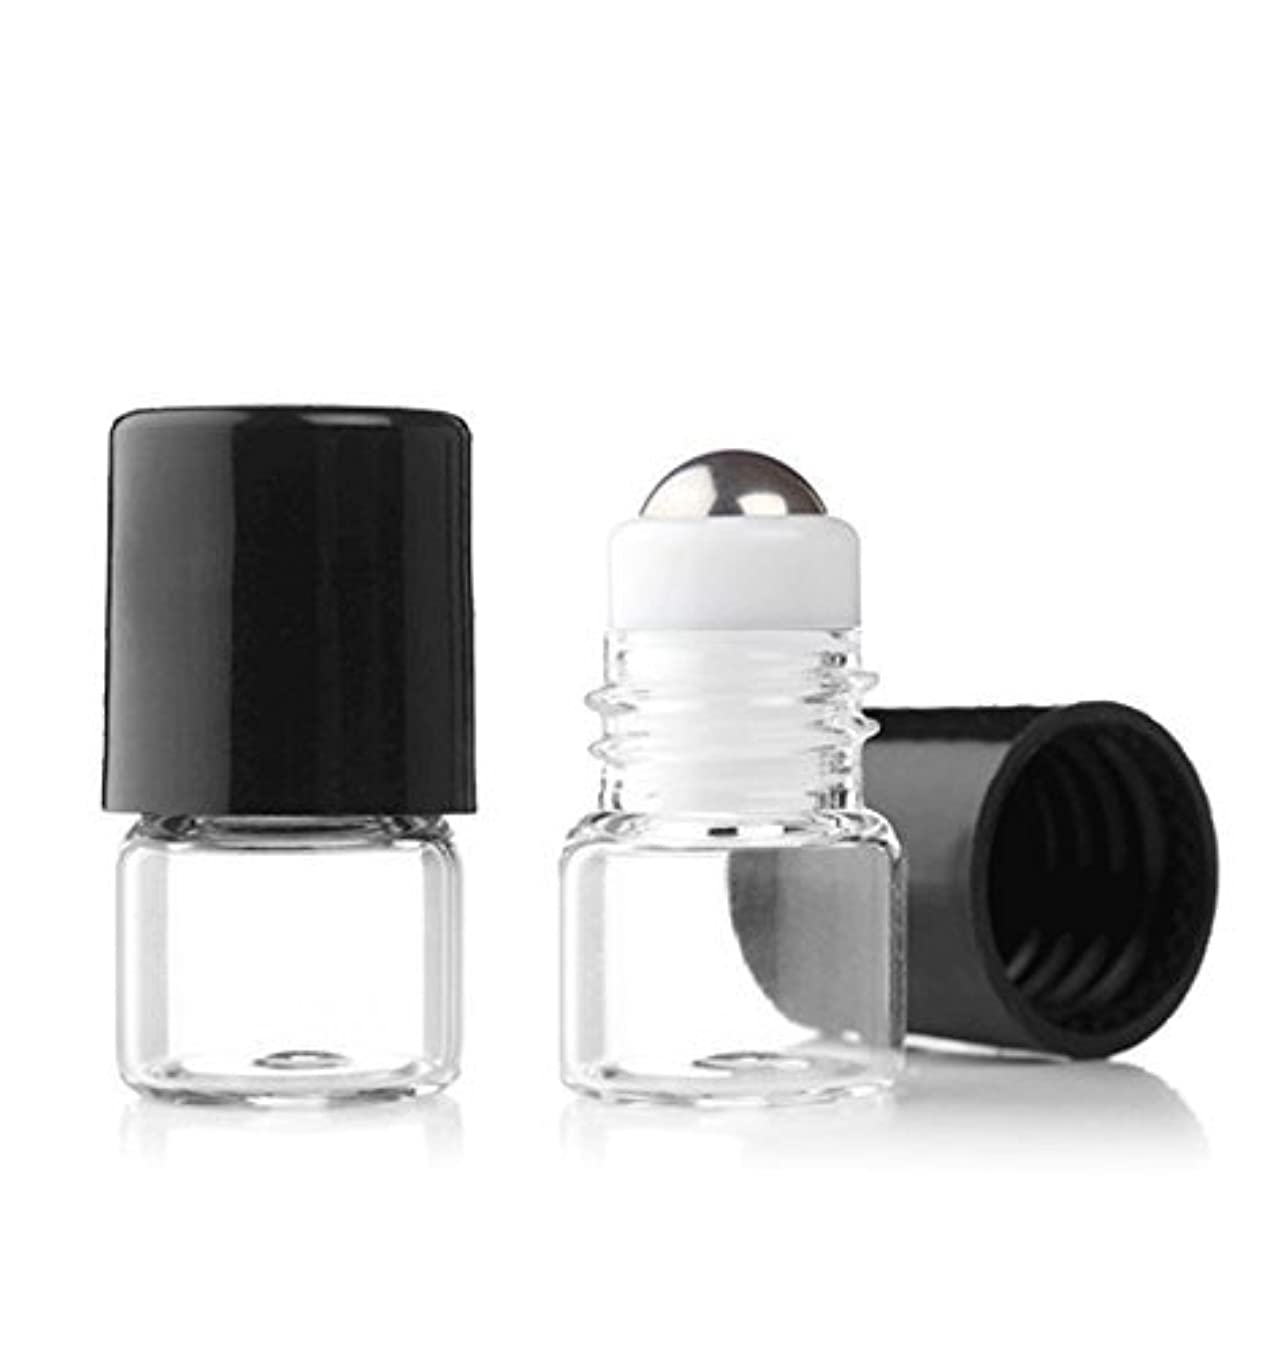 Grand Parfums Empty 1ml Micro Mini Rollon Dram Glass Bottles with Metal Roller Balls - Refillable Aromatherapy...